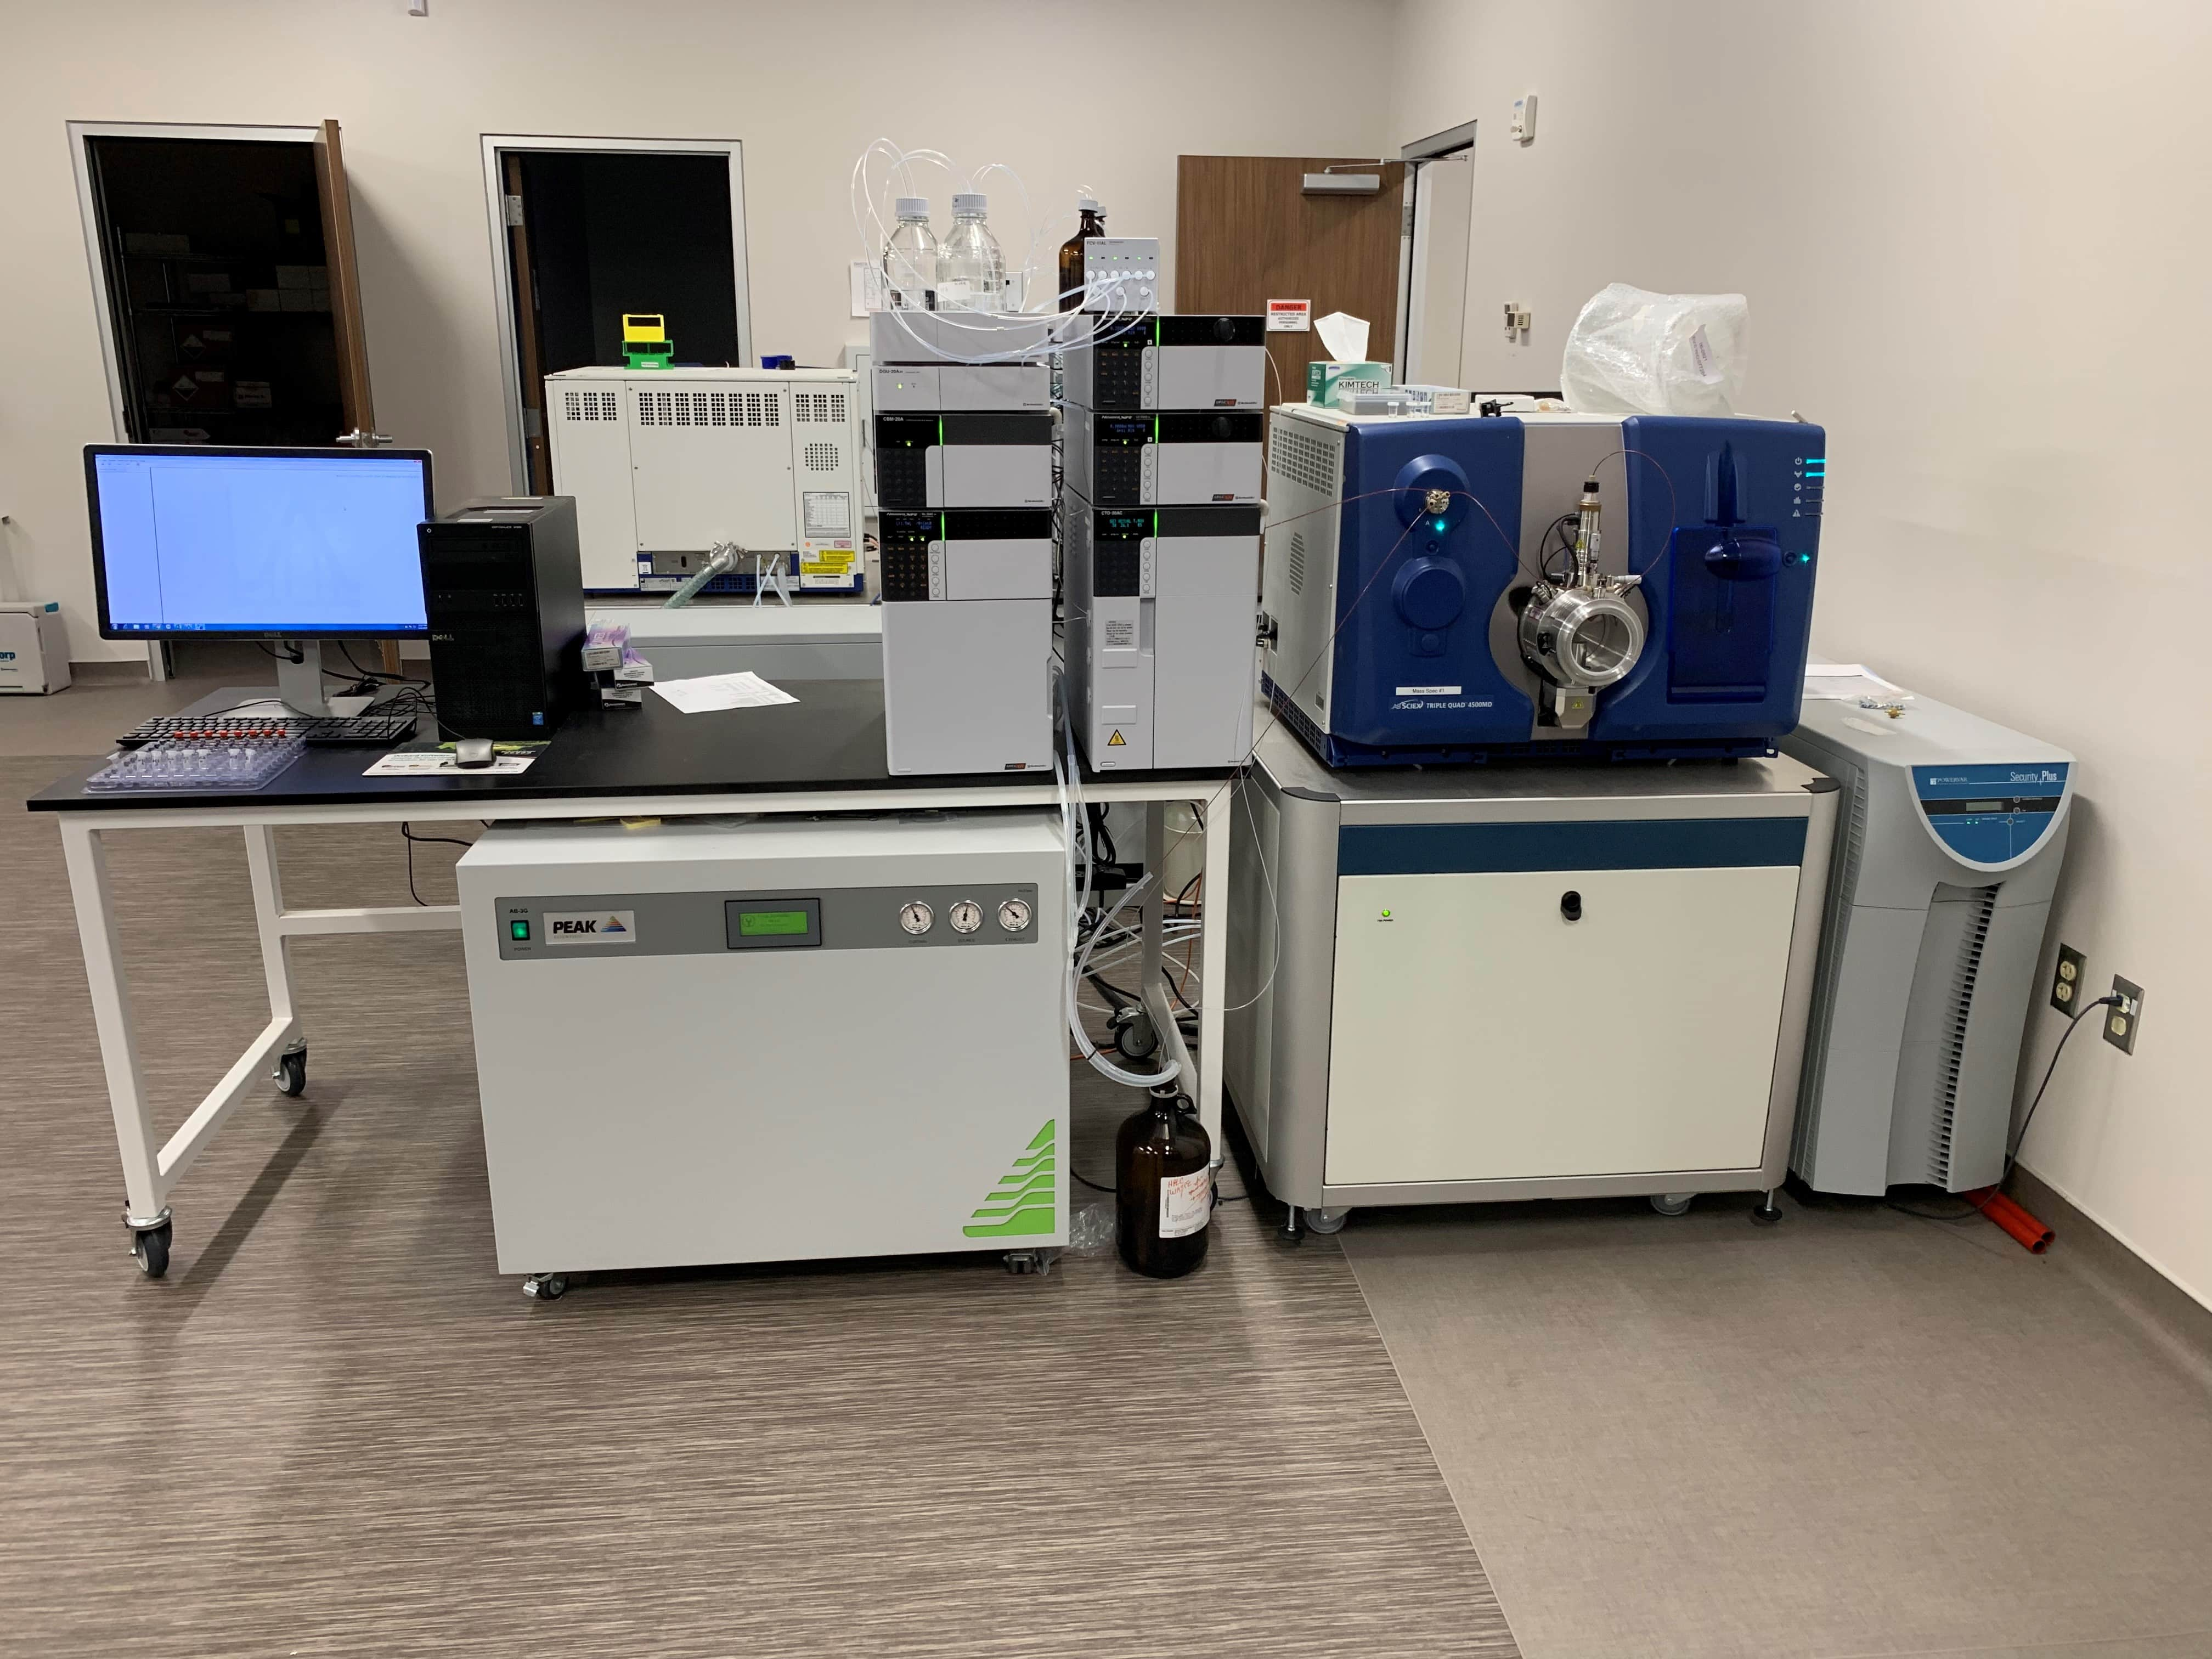 2017 AB SCIEX 4500 LC-MS/MS BRAND NEW BARELY USED COMPLETE SYSTEM